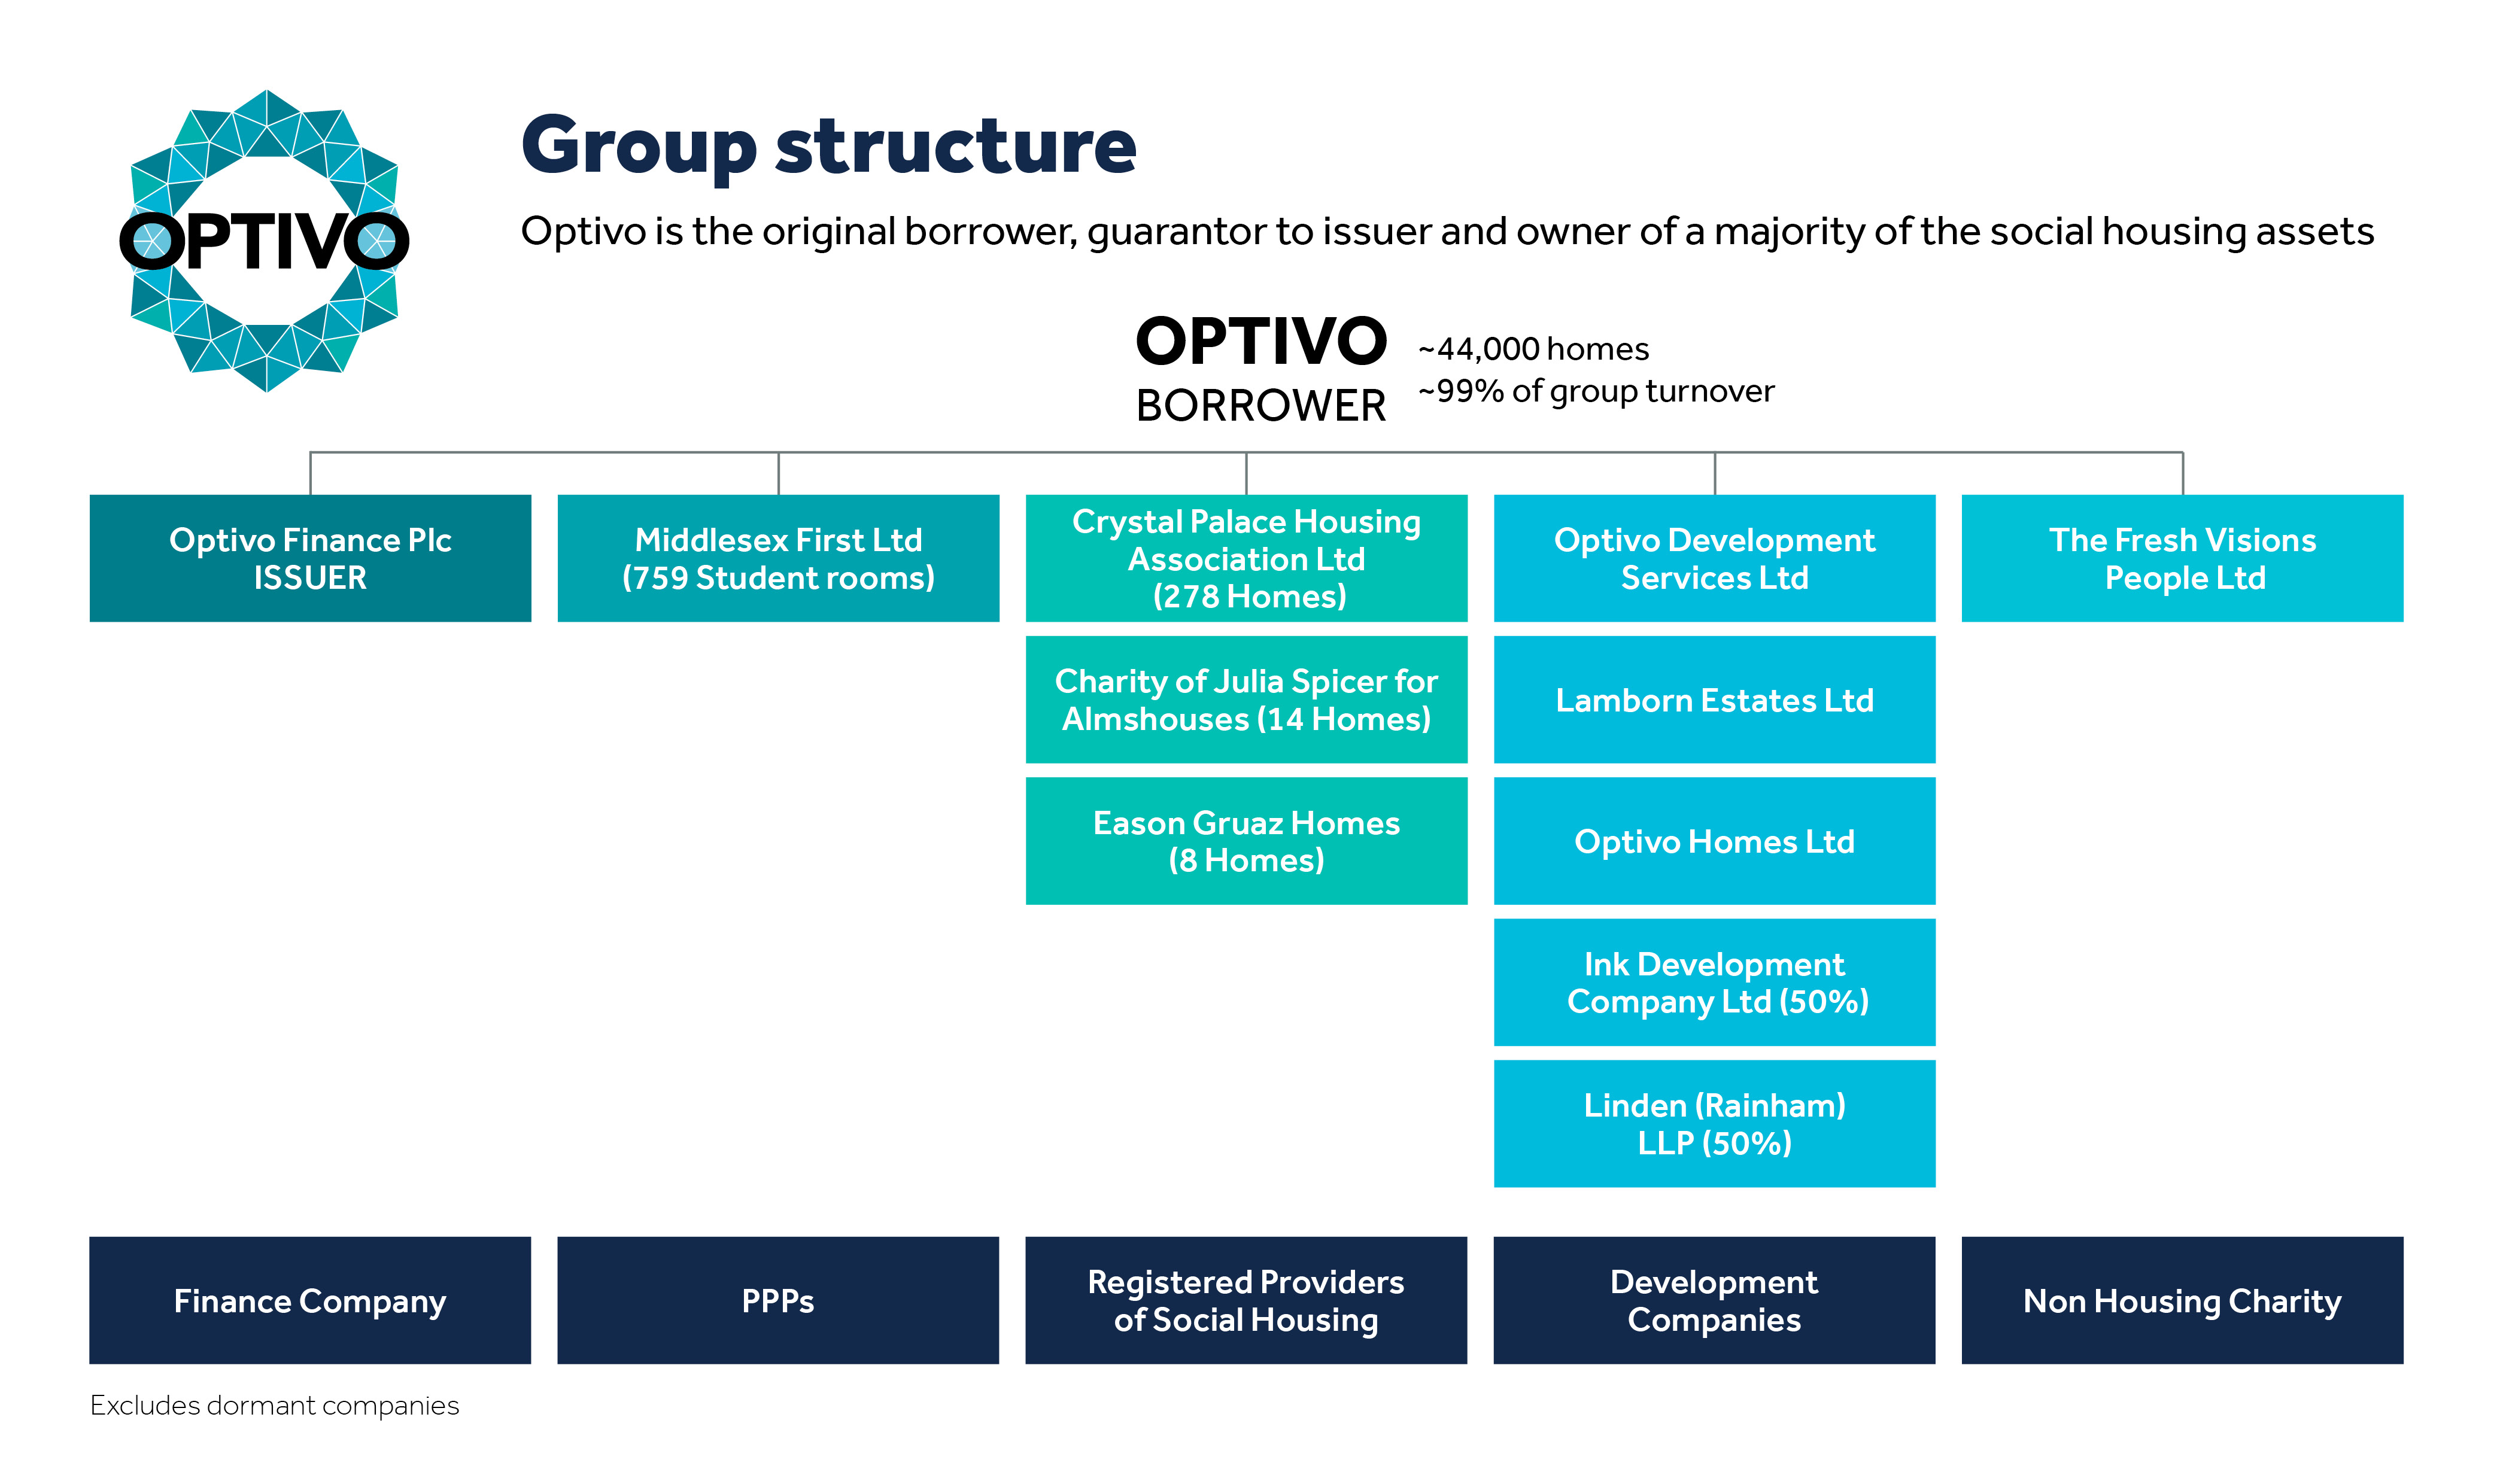 Optivo group structure